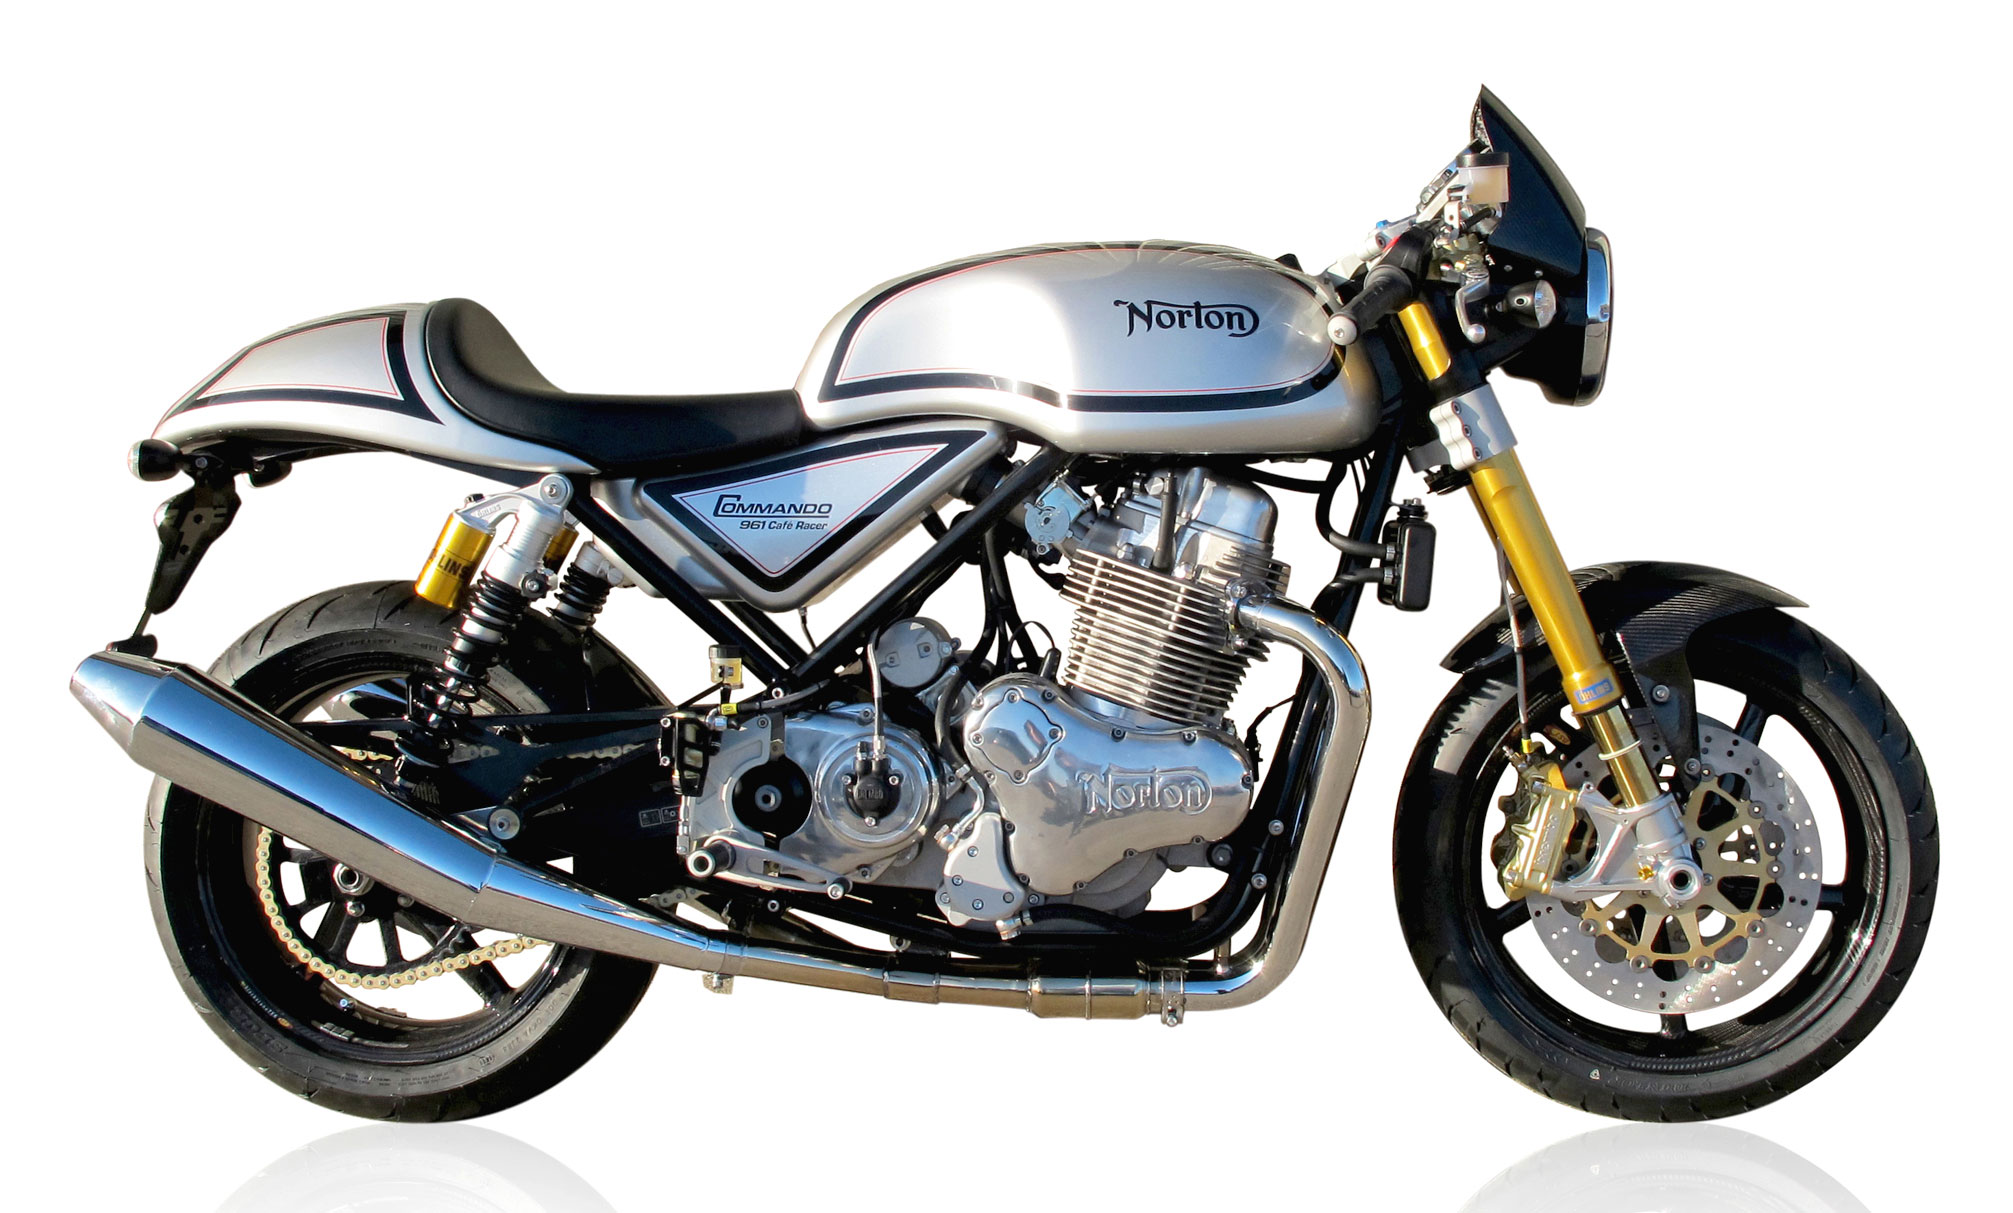 Top 10 production caf racers visordown for The norton